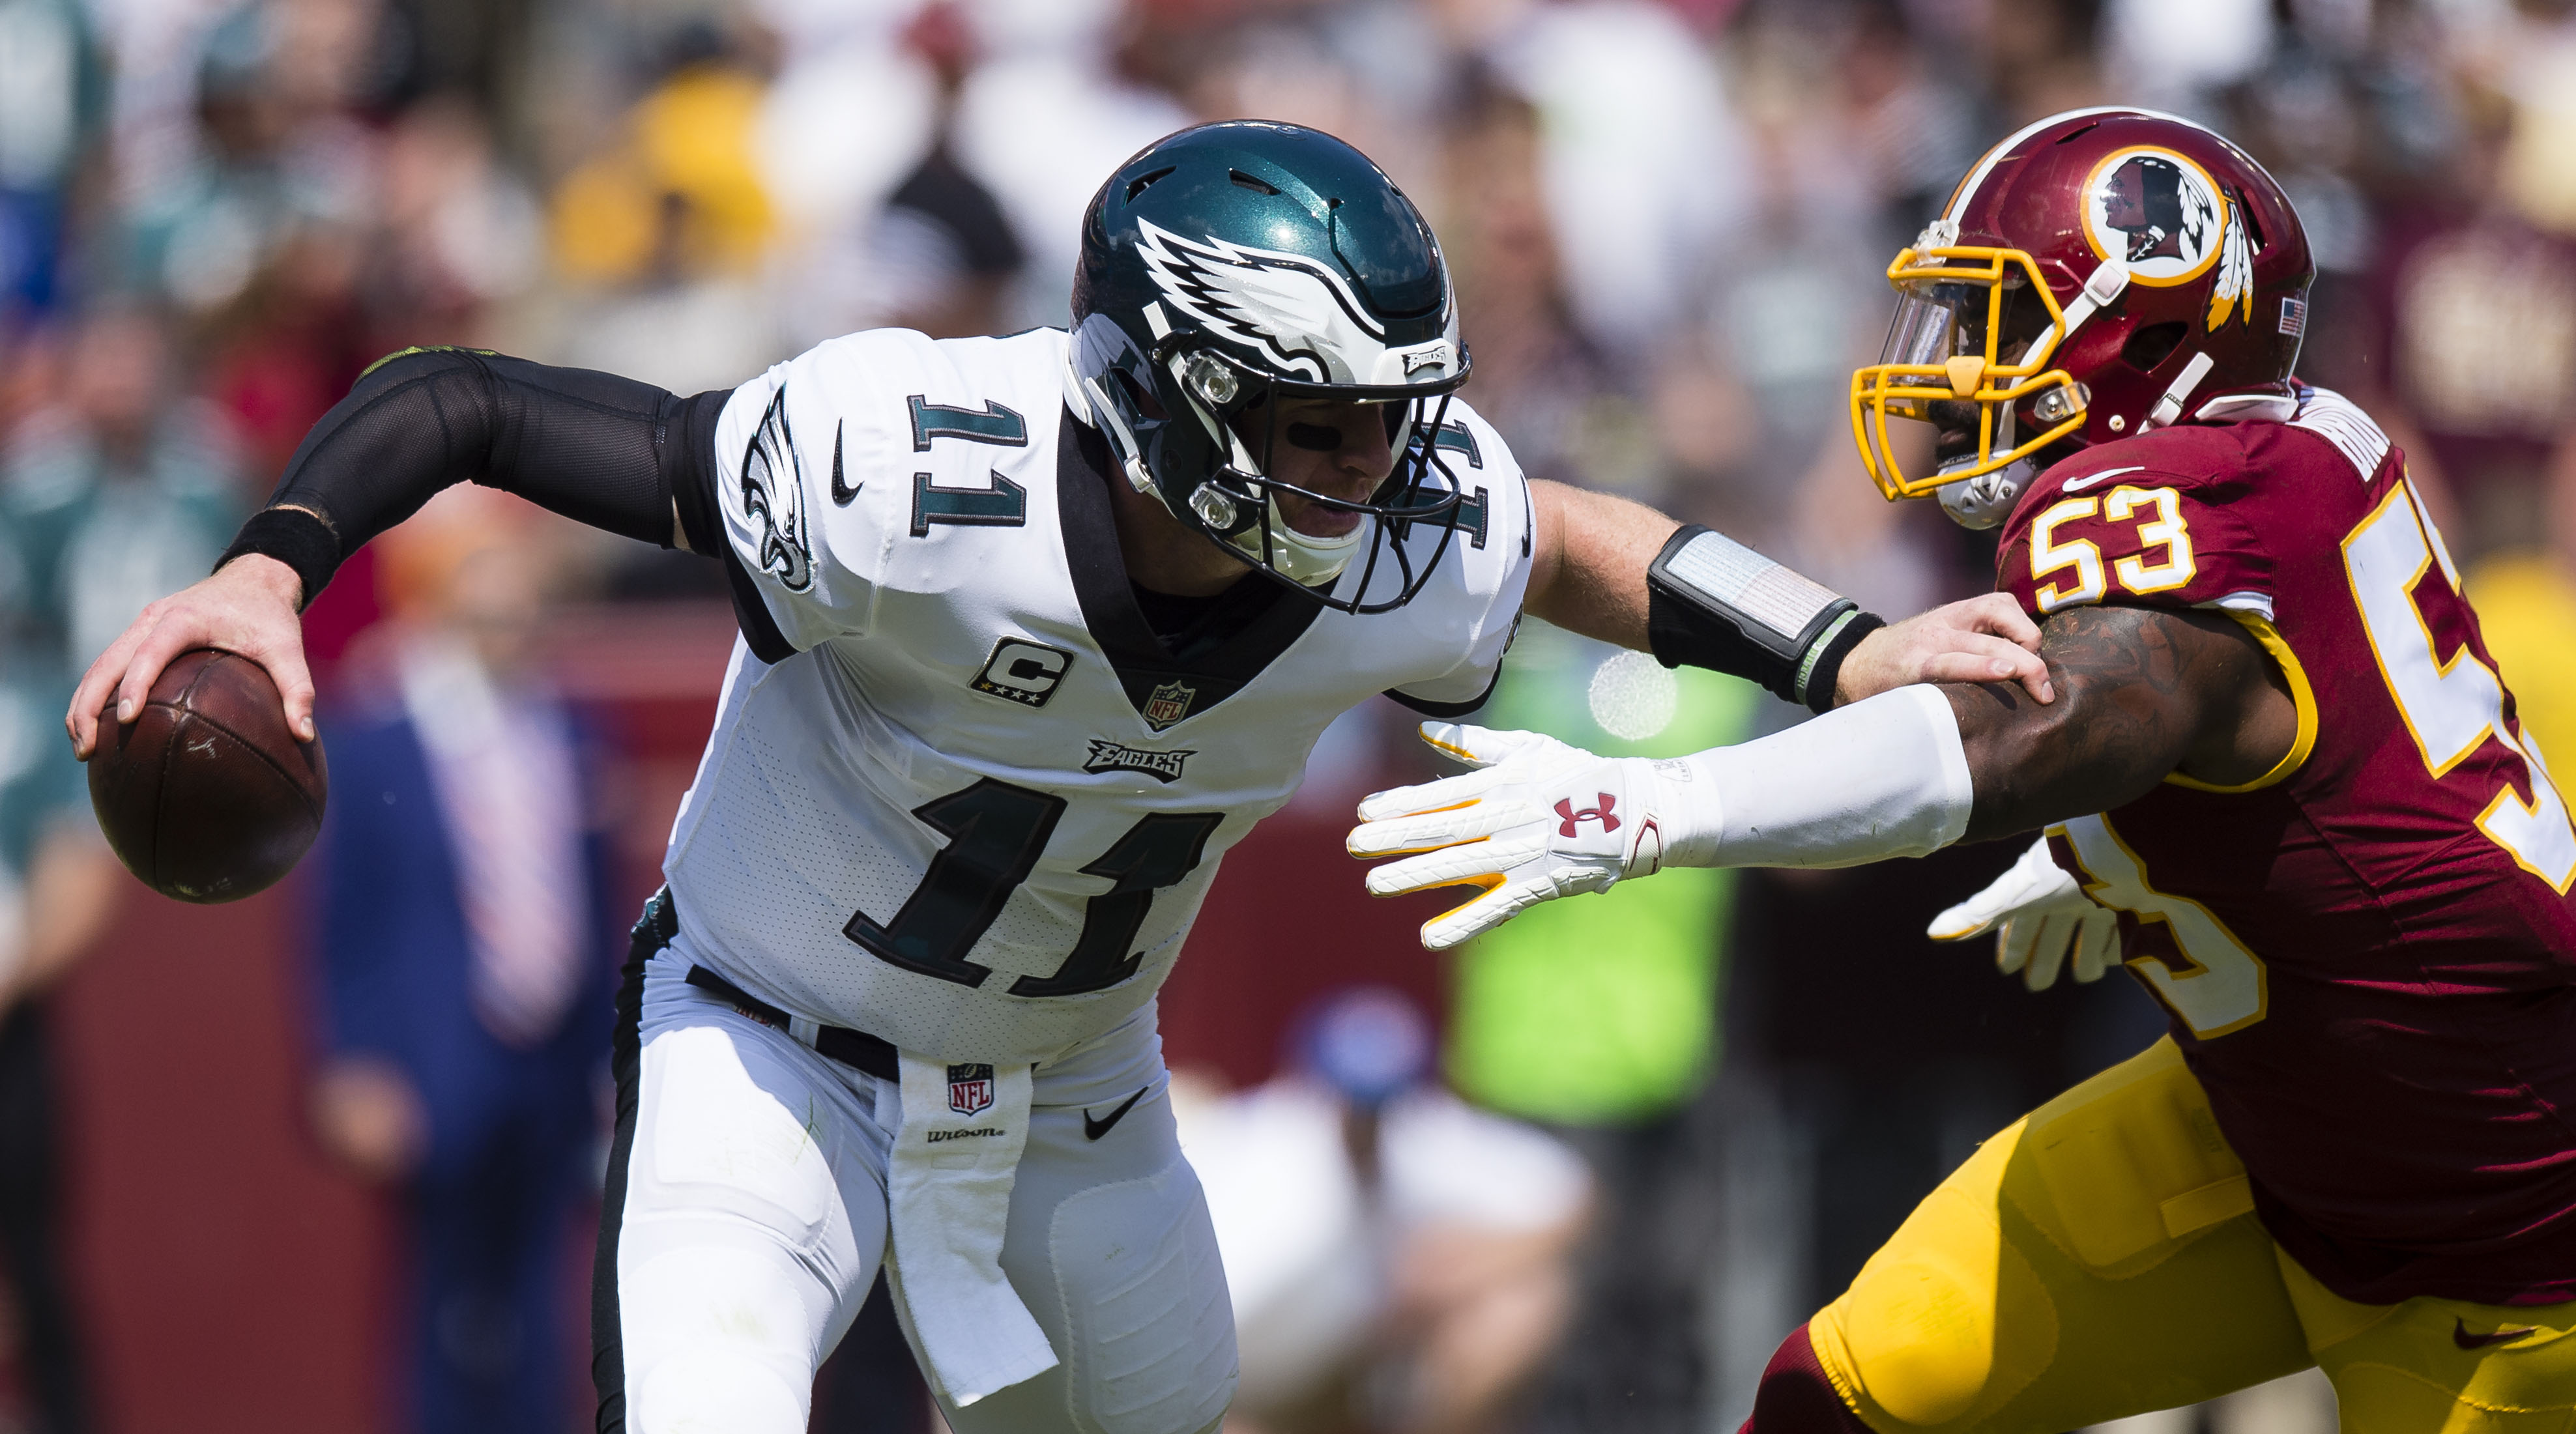 The Entire Season Is On The Line How Do The Philadelphia Eagles Beat The Washington RWords